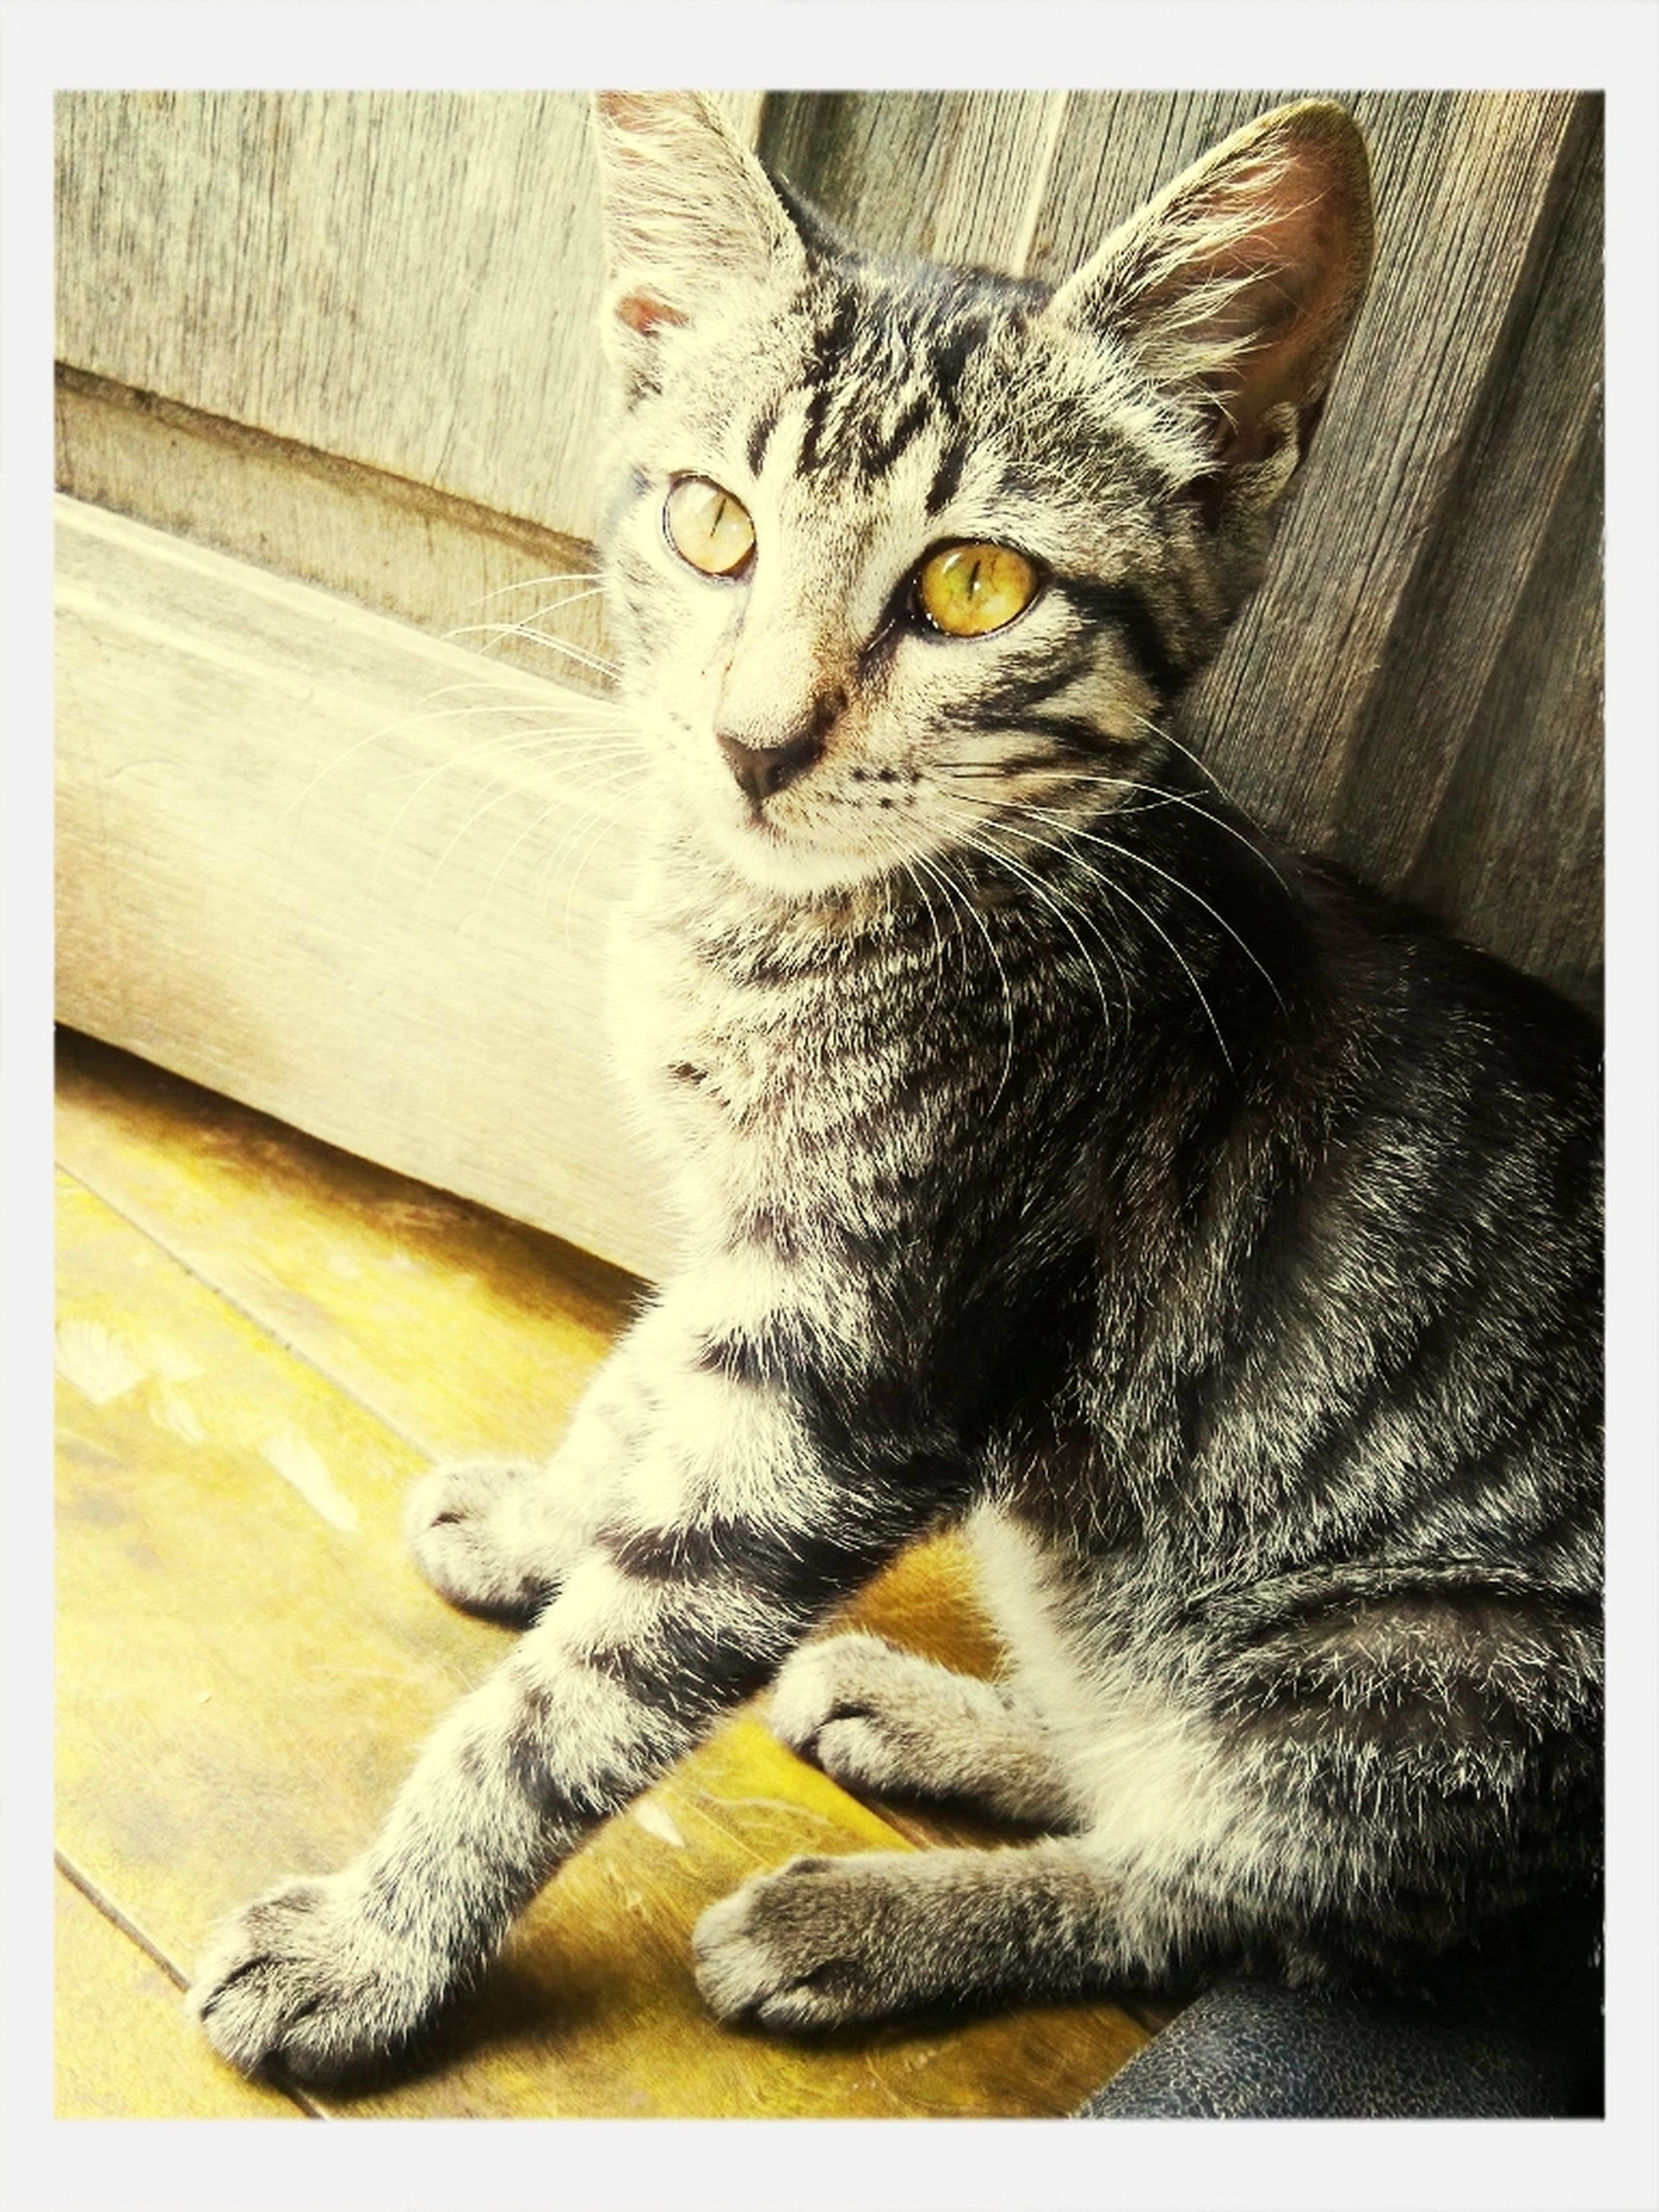 domestic cat, cat, animal themes, one animal, feline, pets, transfer print, domestic animals, mammal, whisker, auto post production filter, portrait, indoors, looking at camera, alertness, sitting, relaxation, staring, close-up, animal head